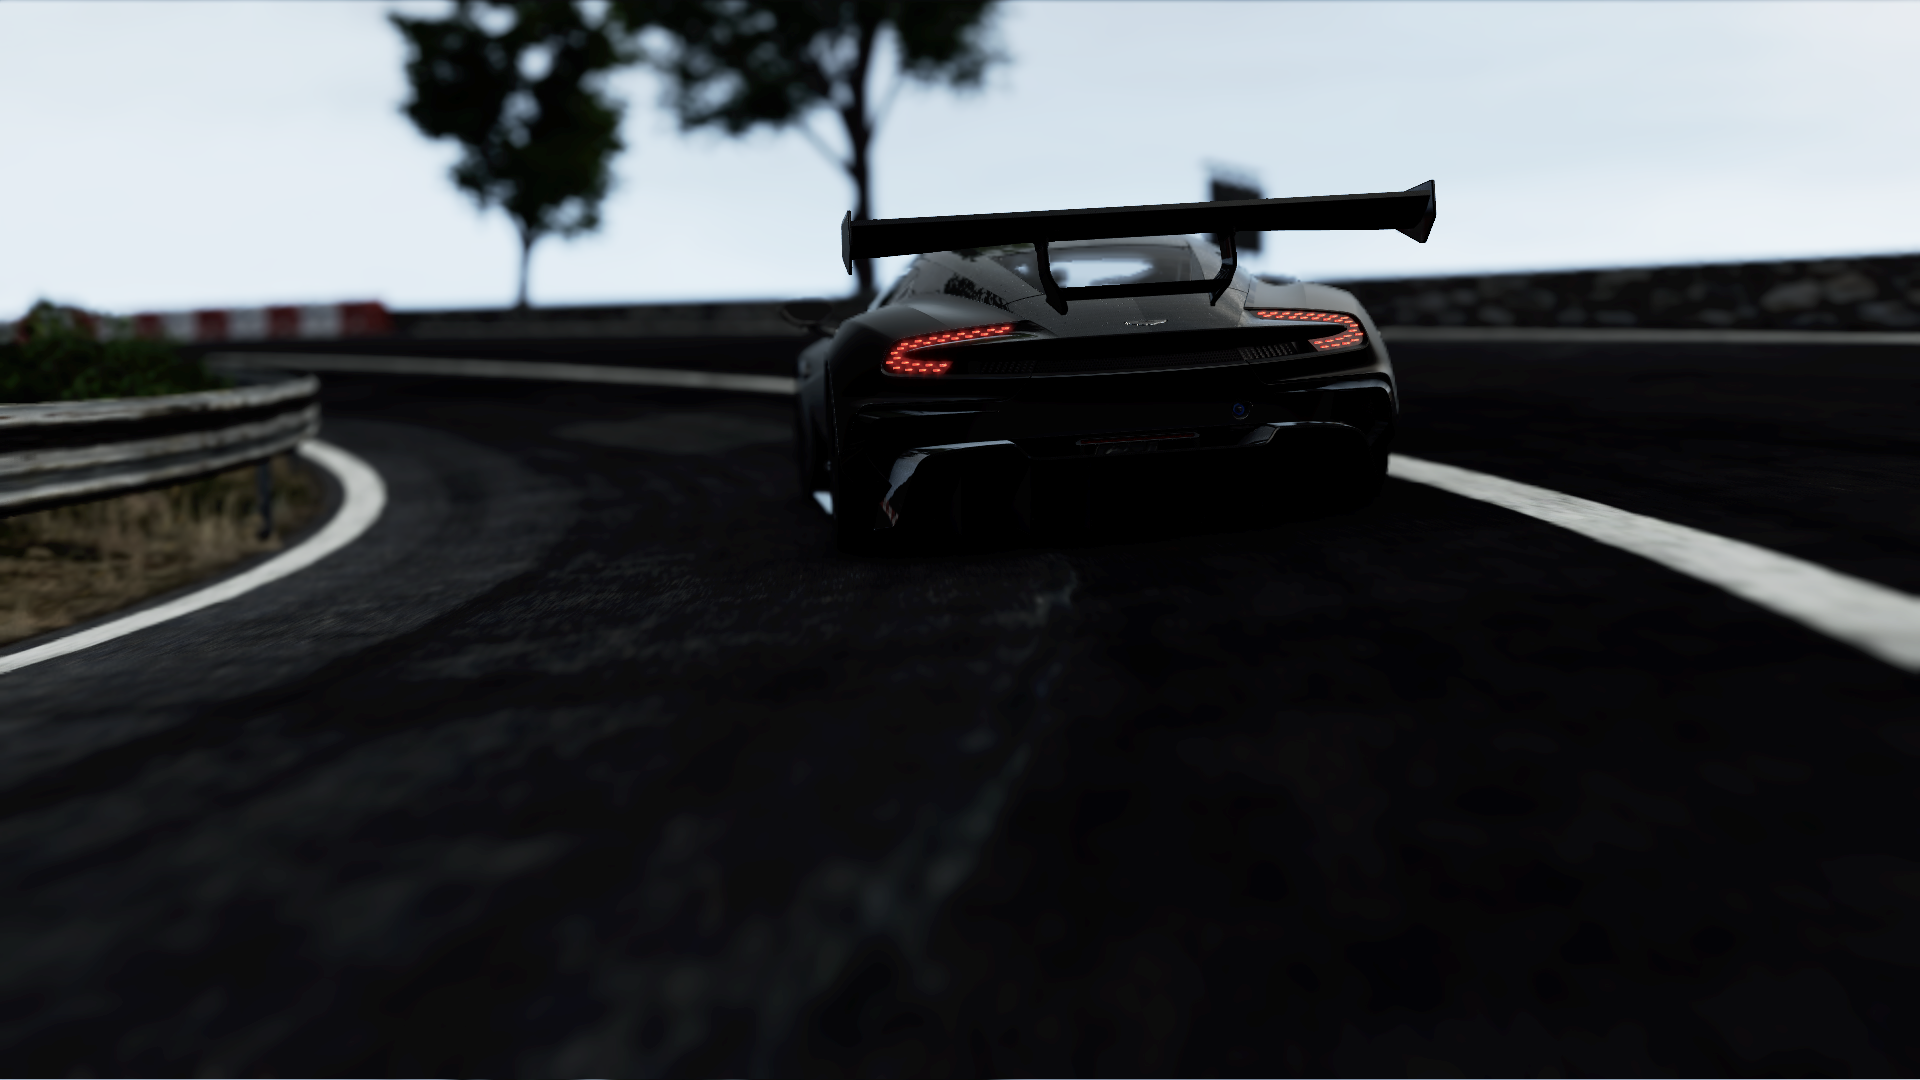 Video Game - Project Cars 2  Project Cars Video Game Aston Martin Vulcan Wallpaper